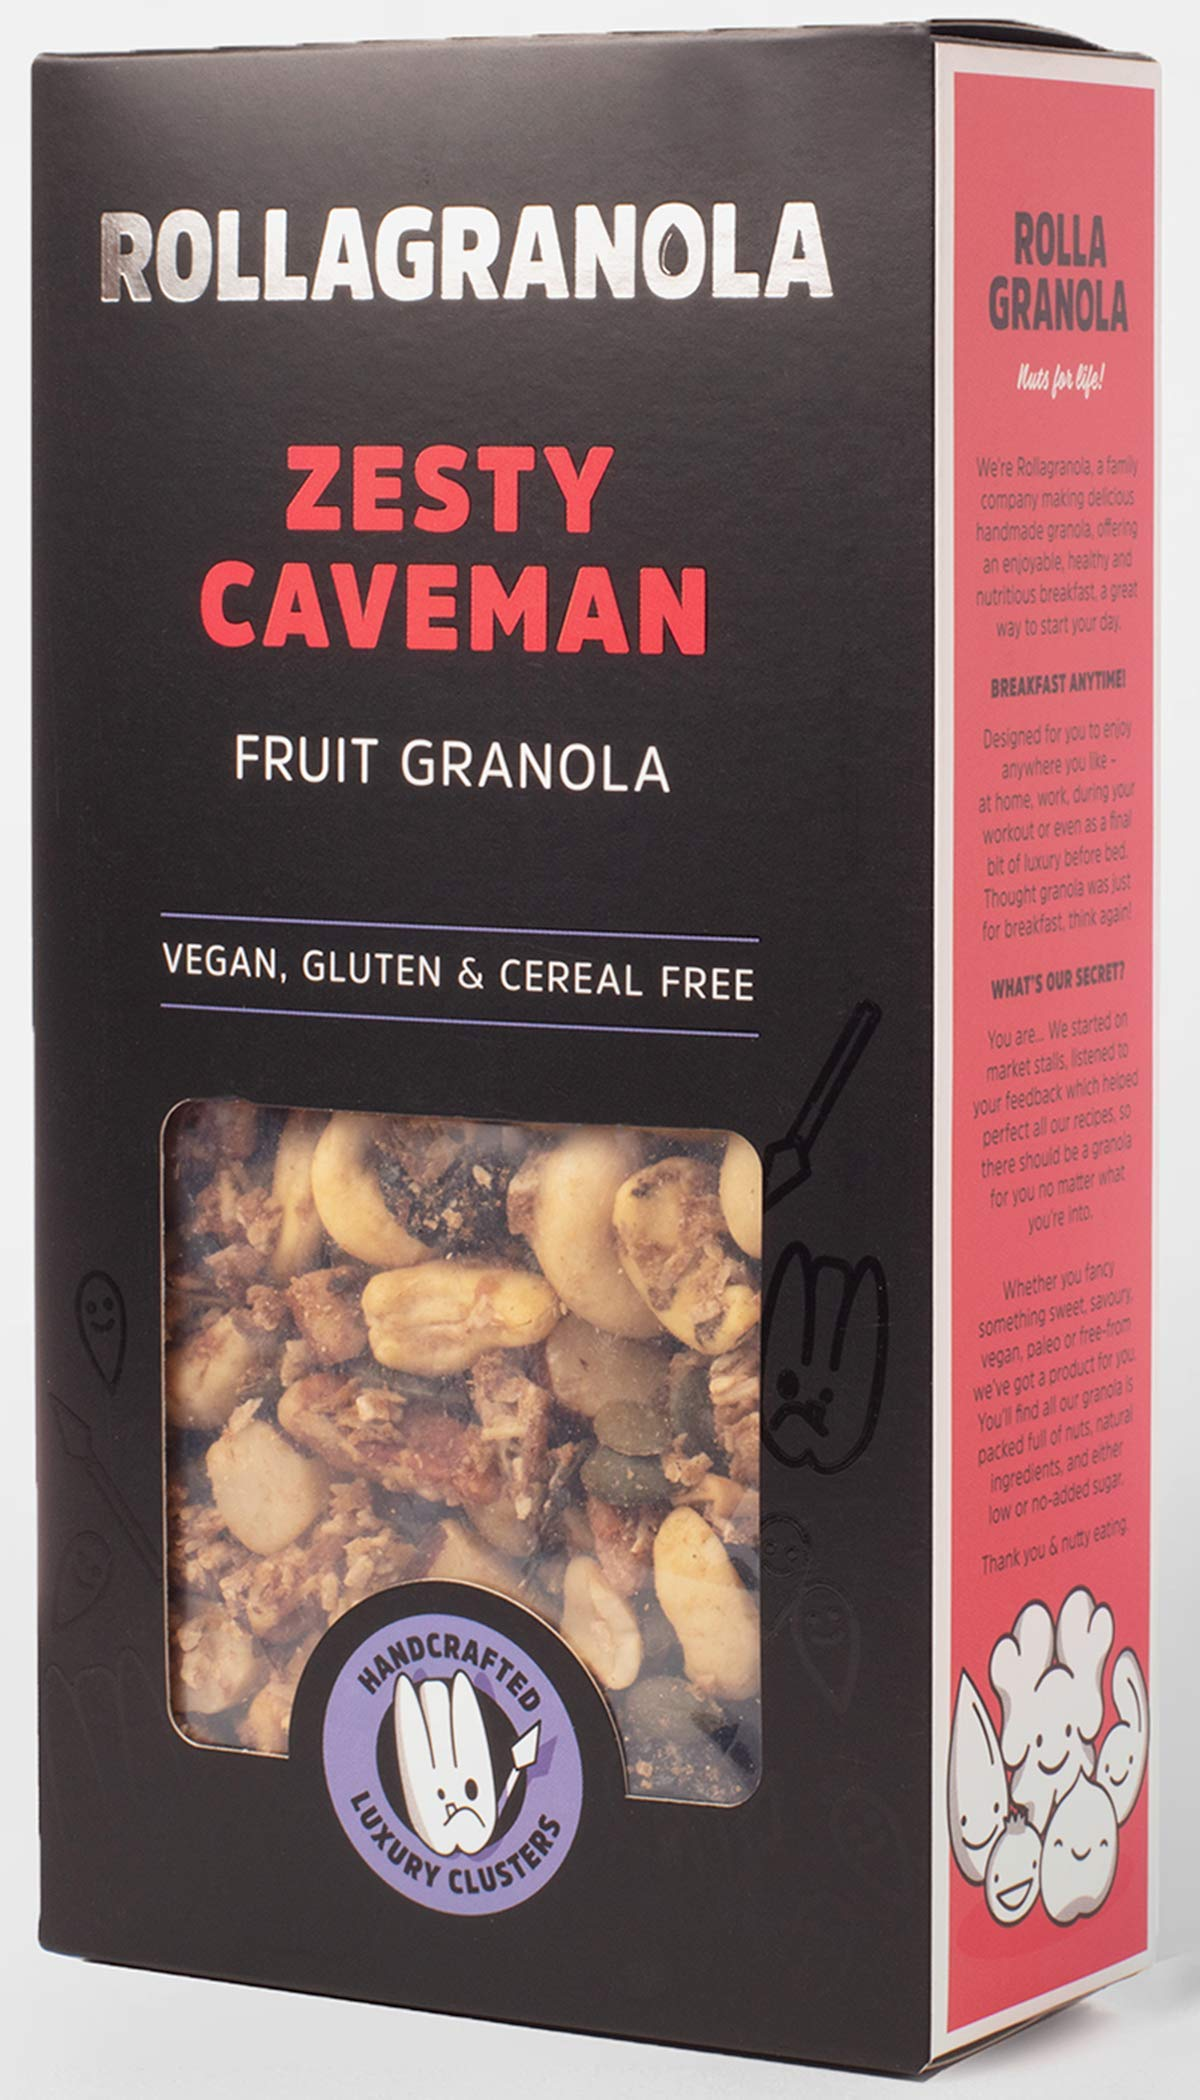 Rollagranola: Zesty Caveman Paleo Fruit Granola | 100% Natural & Healthy Wholefoods | Gluten Free | Cereal Free | Vegan | No Refined Sugar | Ideal for Diabetics - 300g Pack